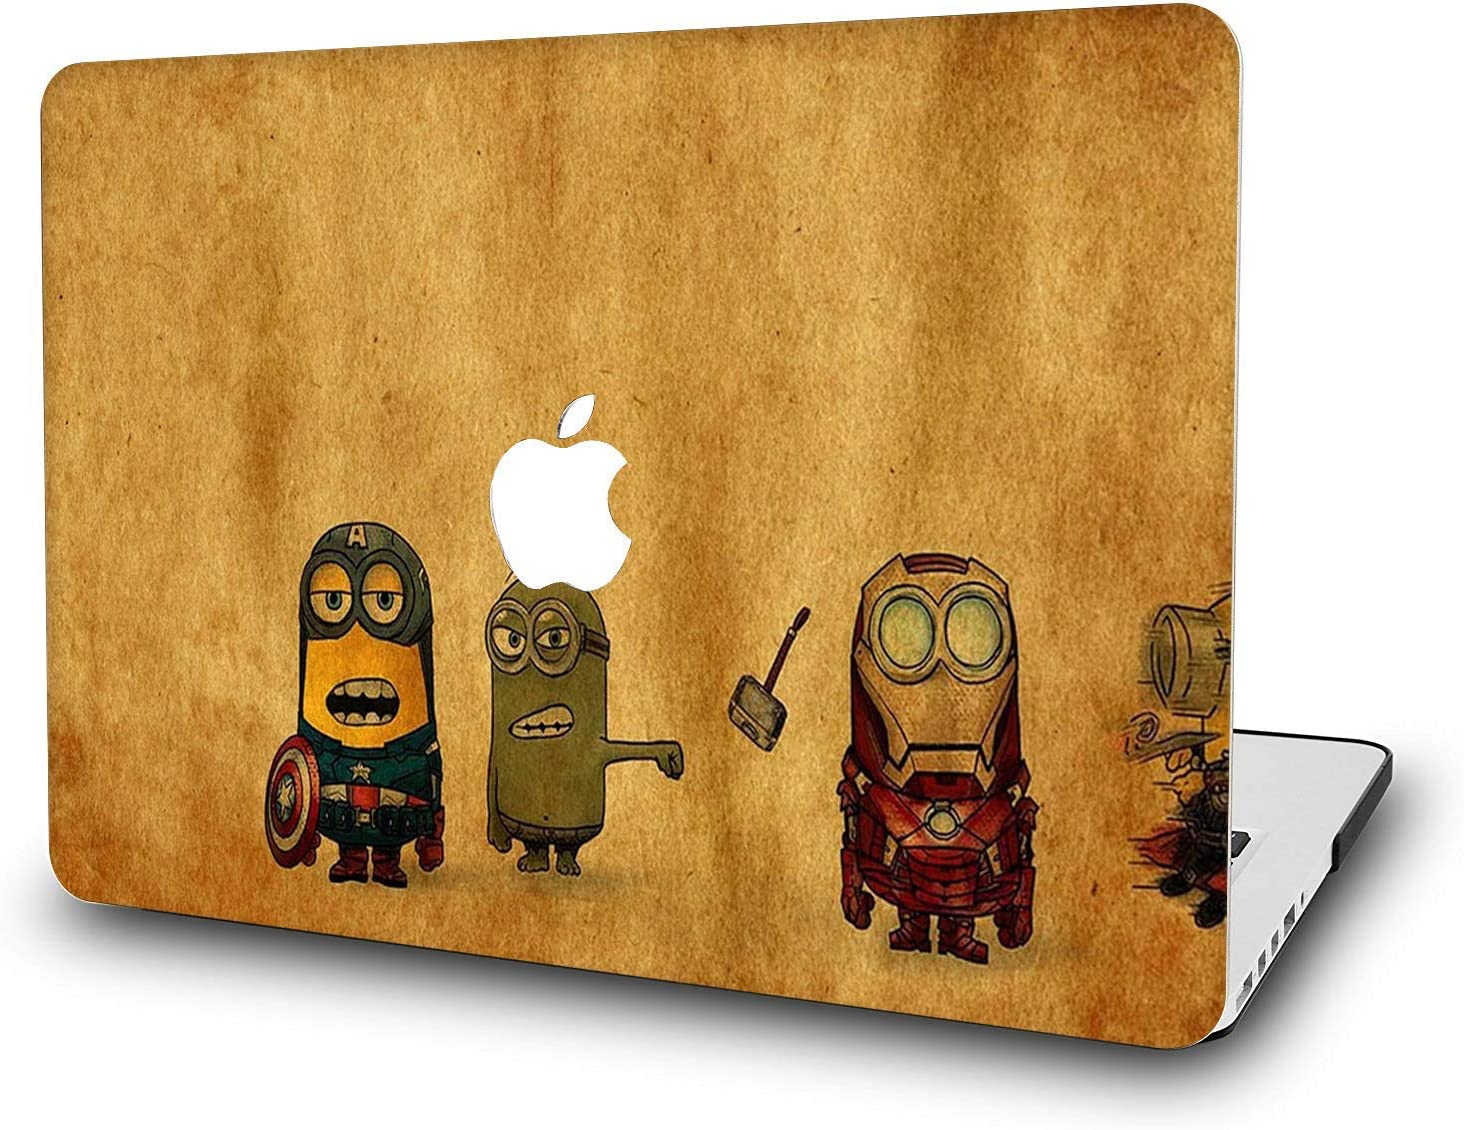 """MacBook Air 11 Inch Case - L2W Laptop Accessories Hard Plastic Printed Cover for Apple Mac Air 11.6"""" with Two USB 3 Ports, Model: A1465/A1370, Protection Shell of Design Minions"""